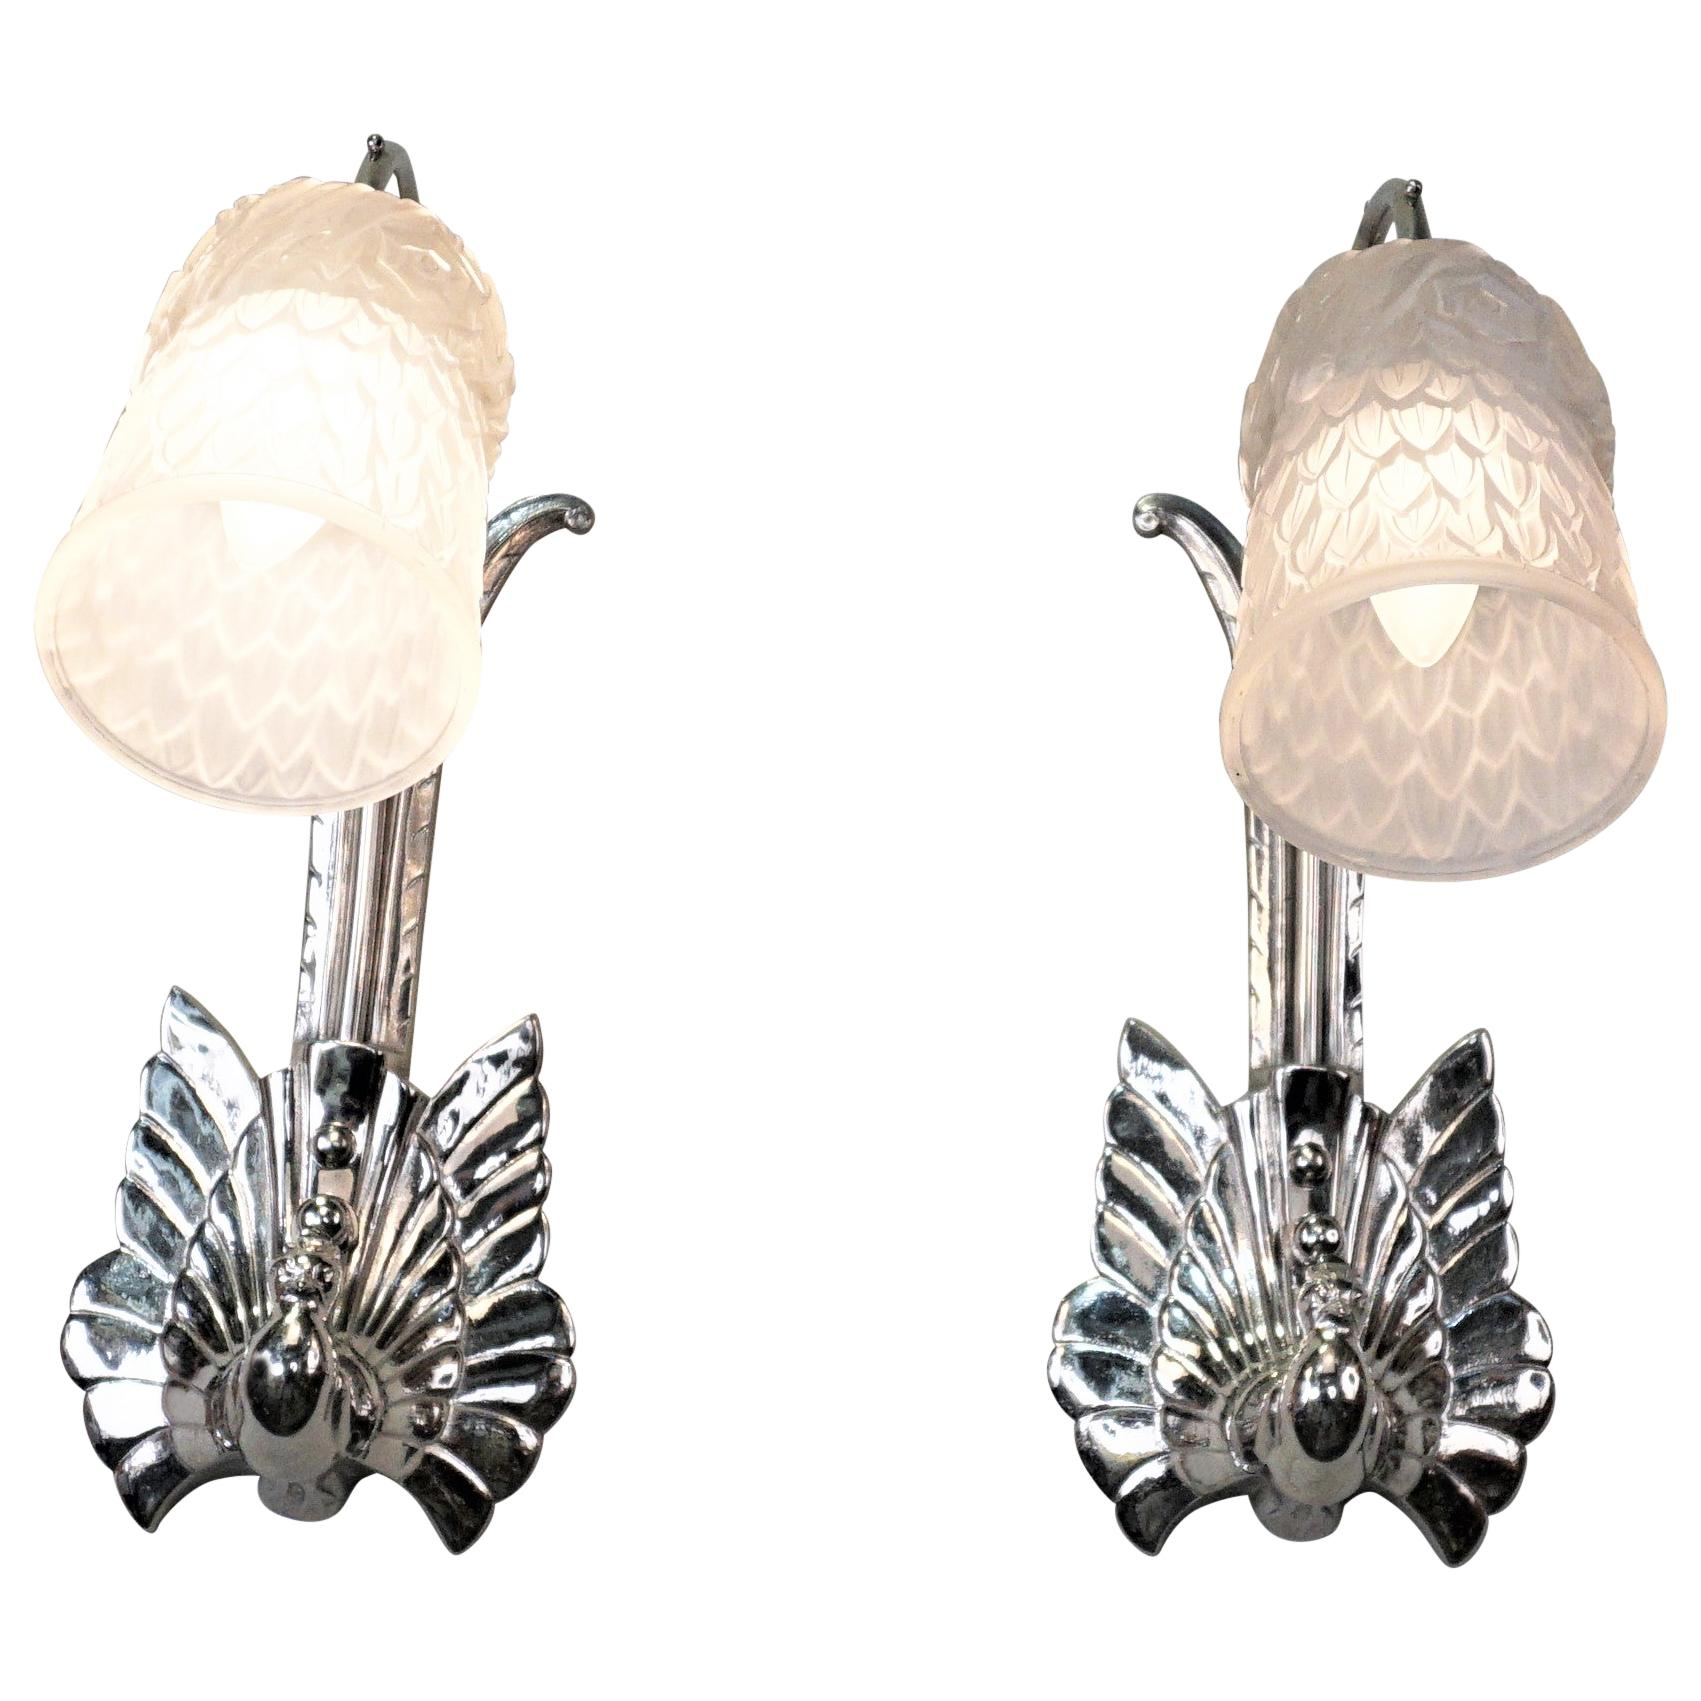 Pair of Art Deco Wall Sconces by Charles Schneider